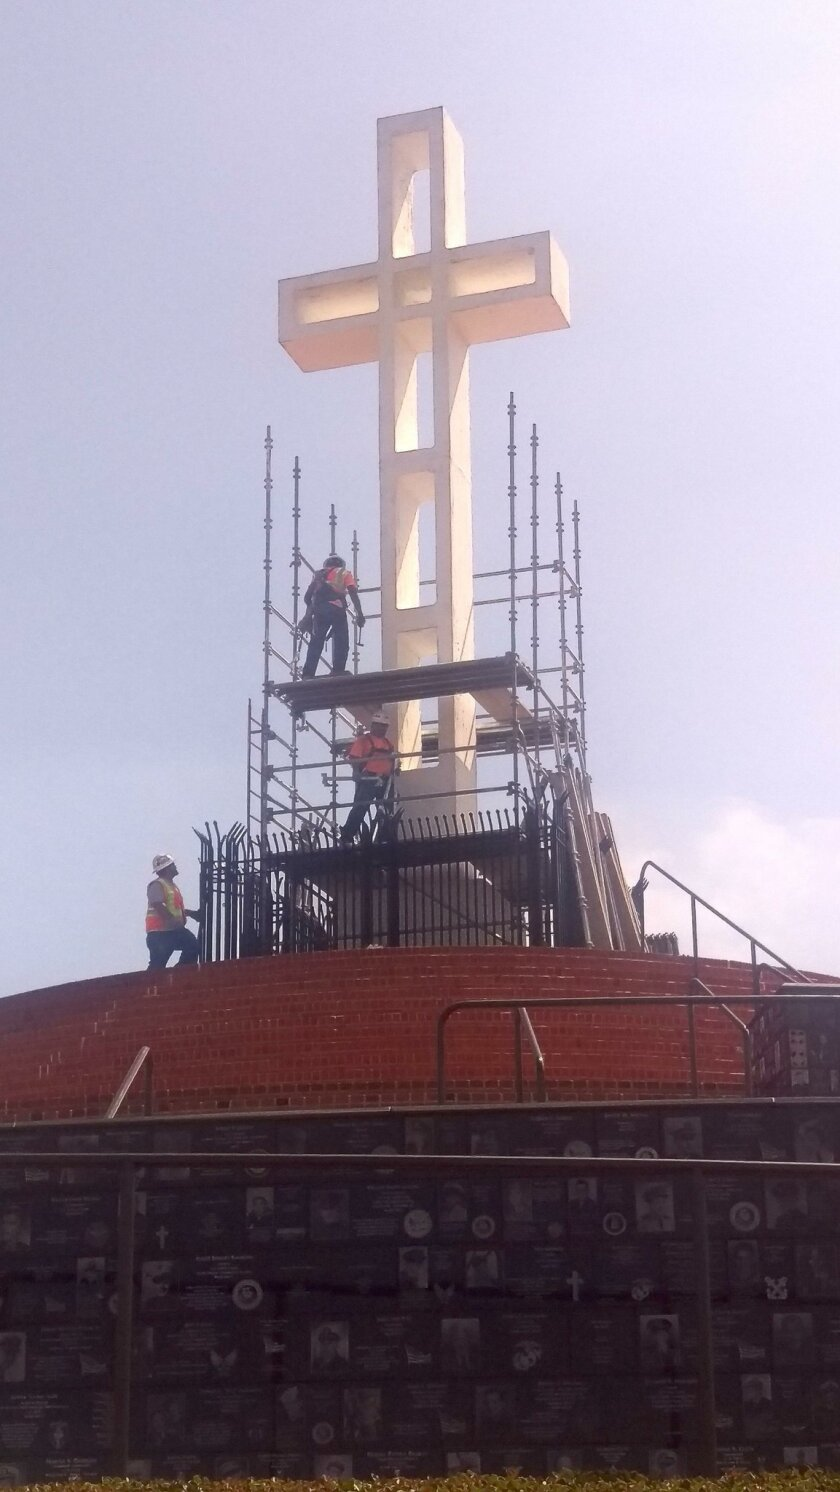 The 27-foot-tall cross is being repaired and repainted by local companies volunteering their expertise.